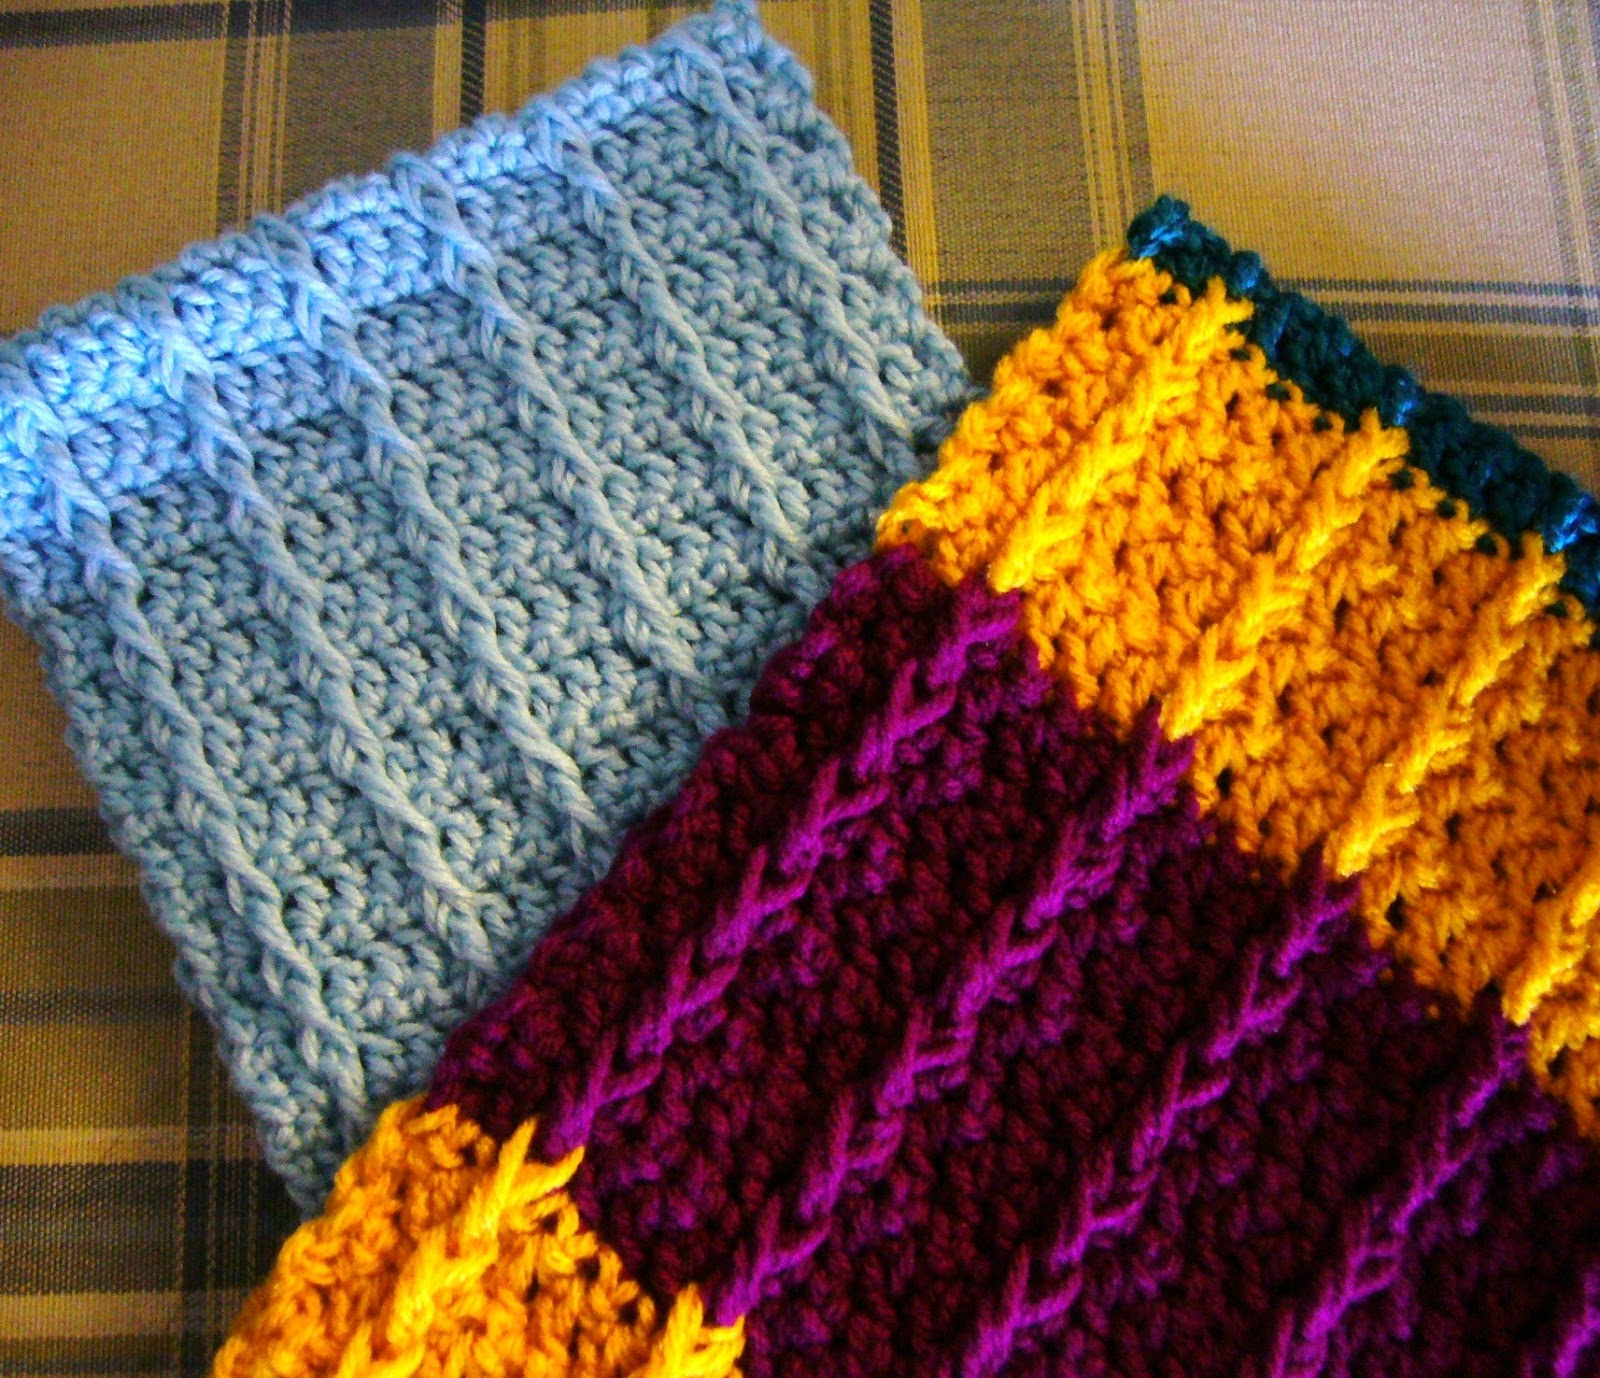 Crochet Stitches Front Post Double Crochet : Simply Shoe Boxes: Double Crochet Front Post Crochet Scarf Pattern ...